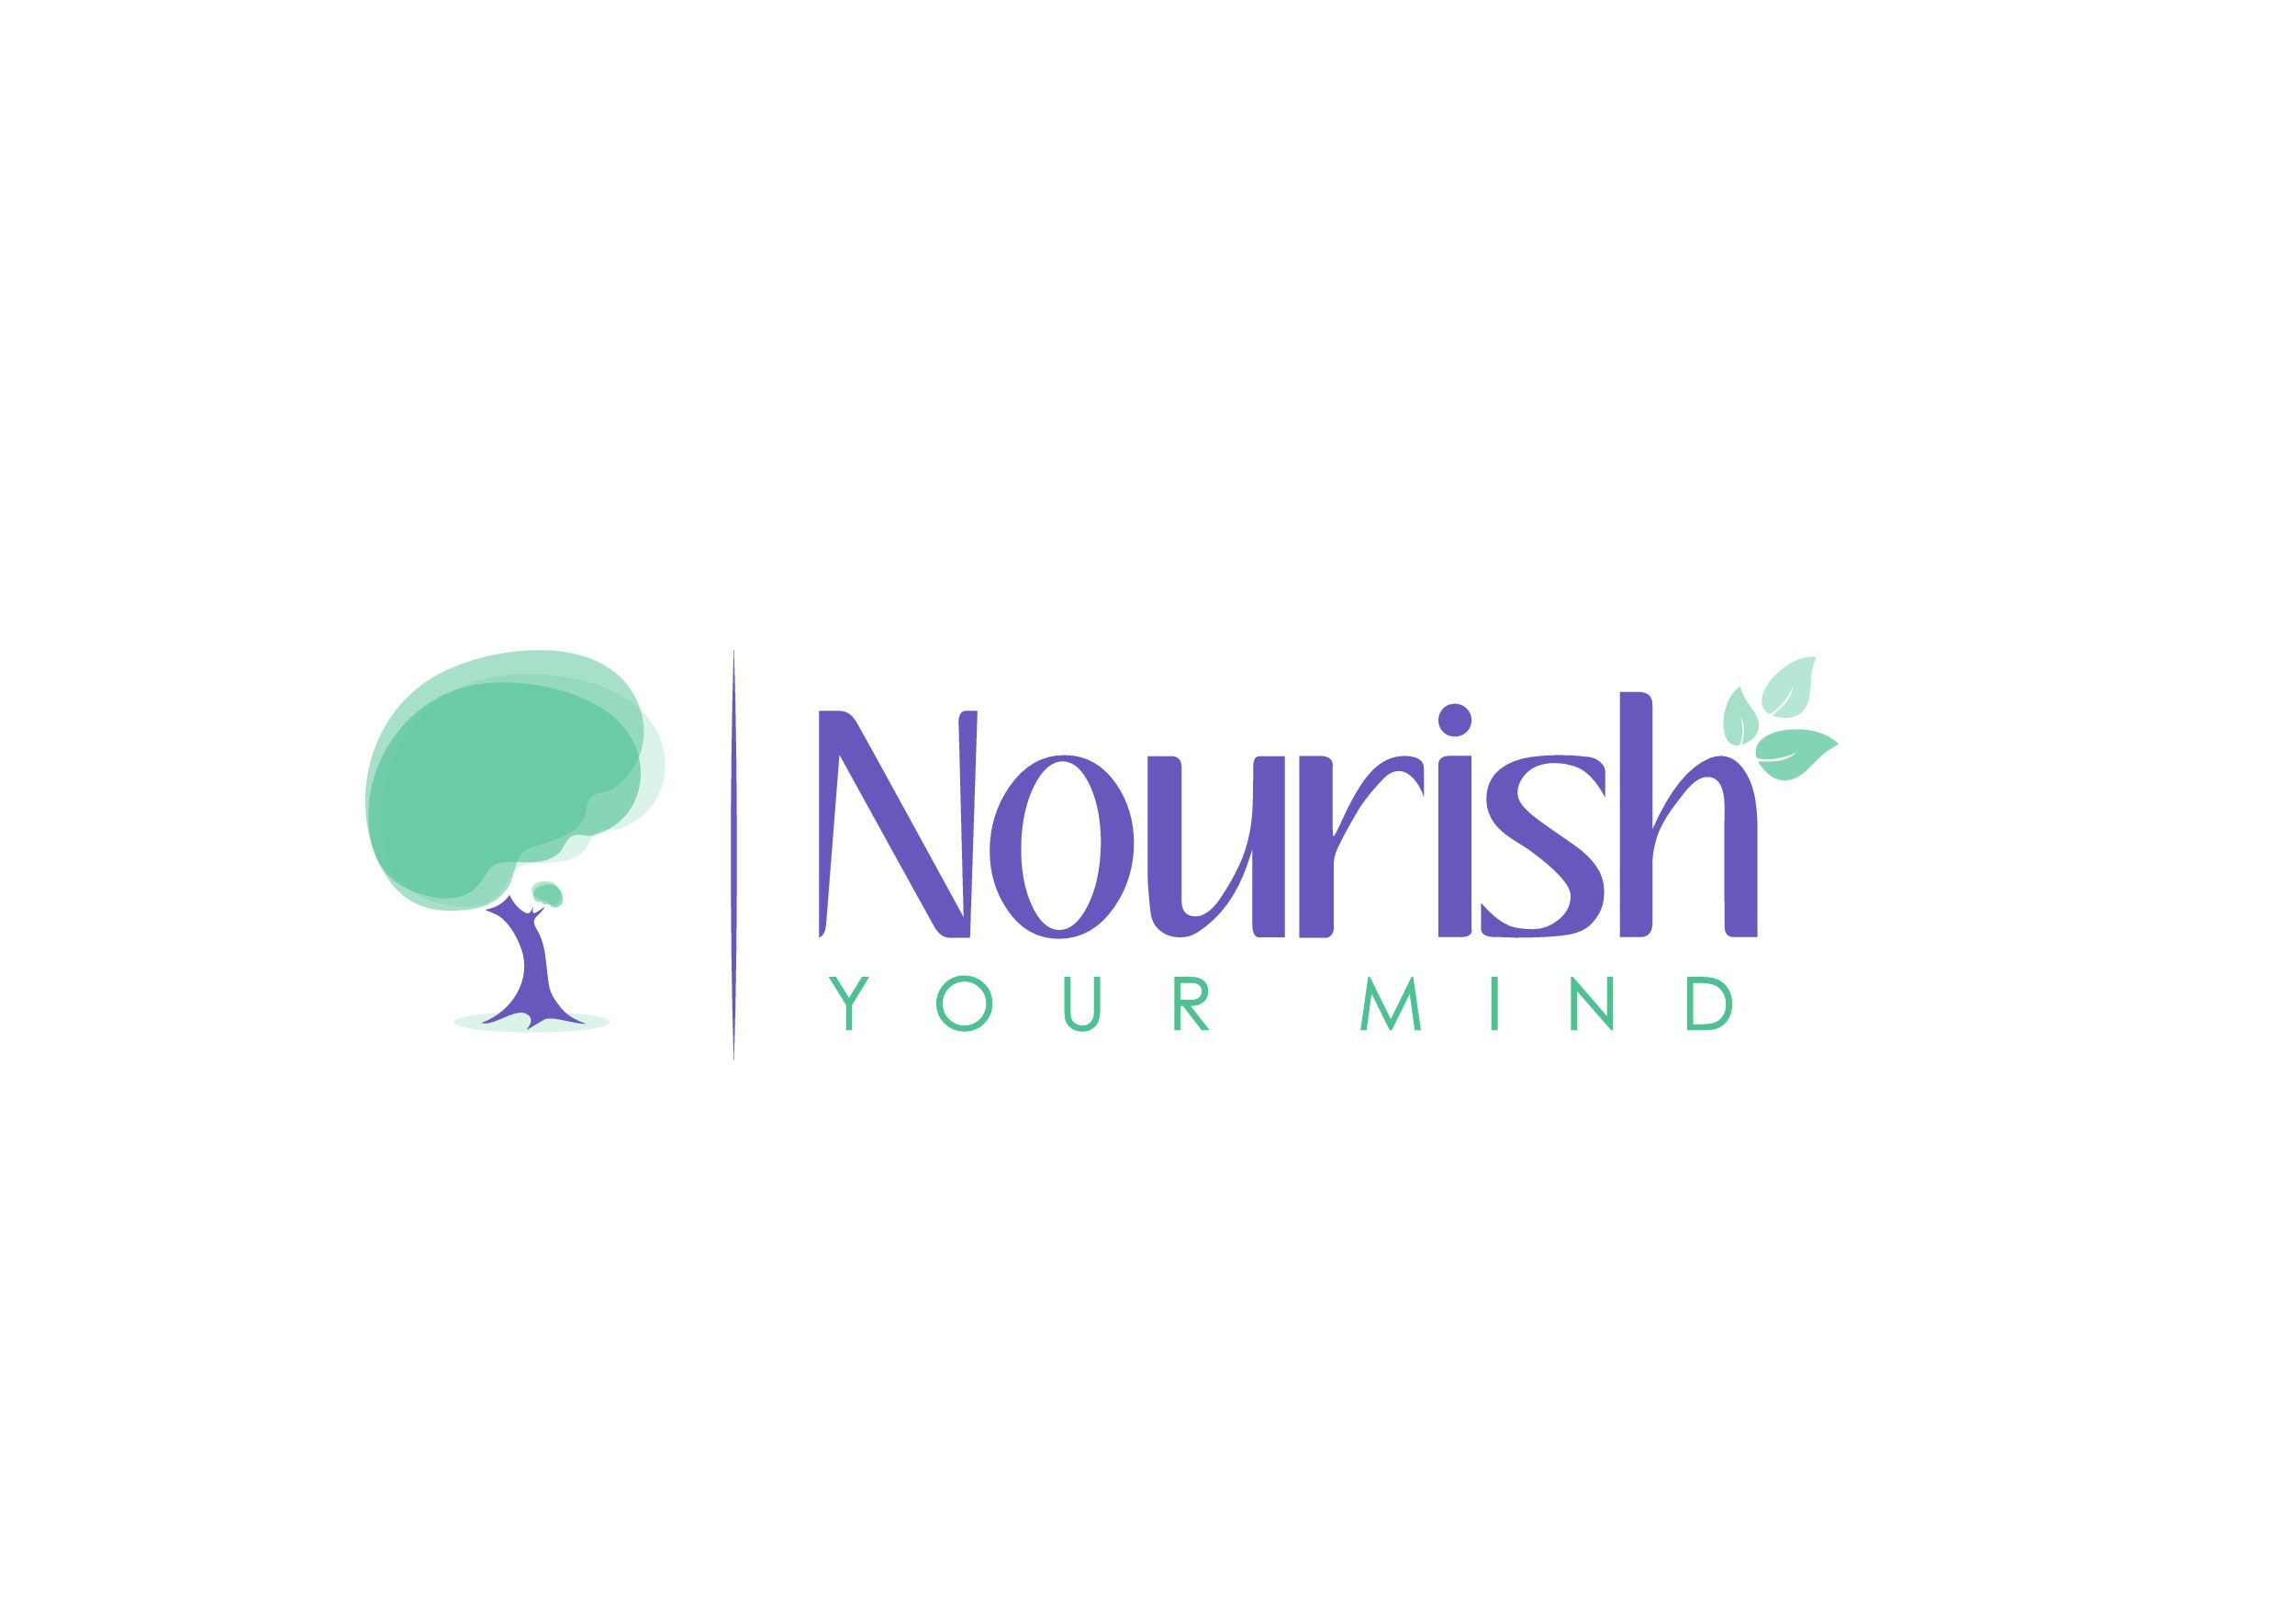 Create a bright, modern design for Nourish Your Mind.